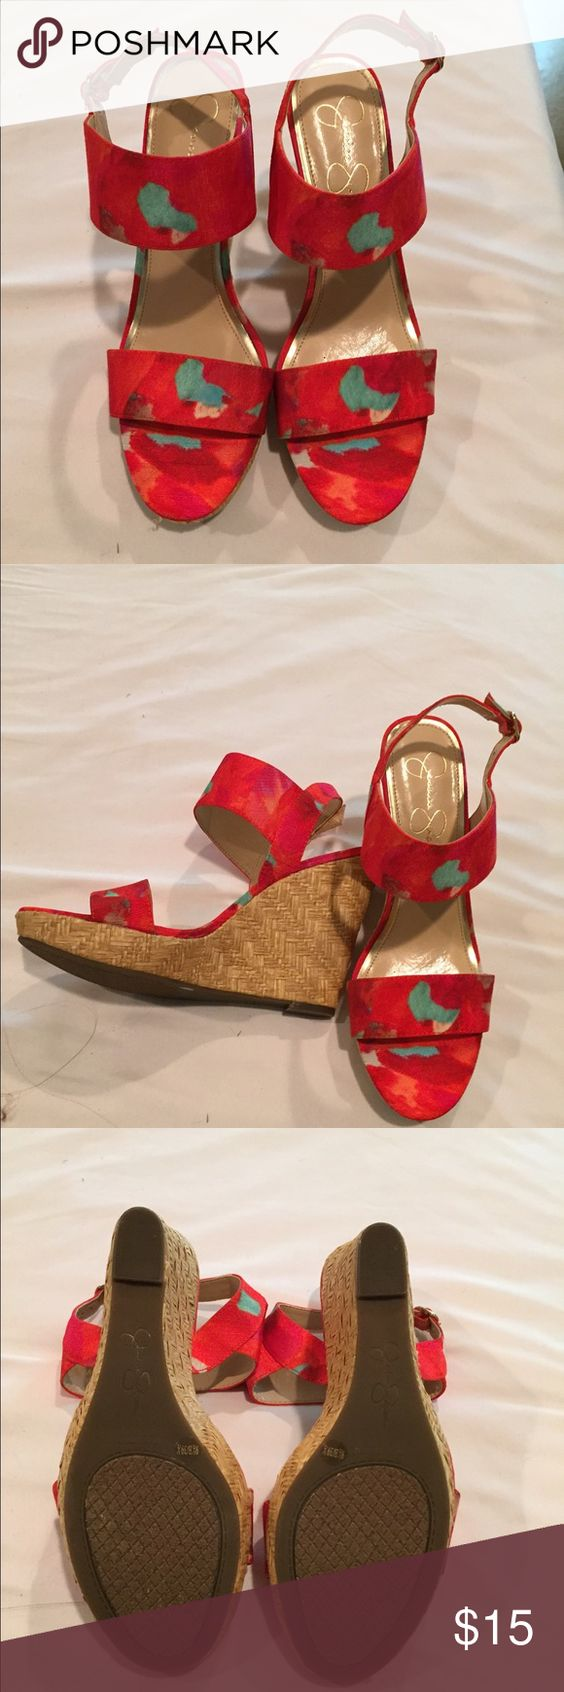 Jessica Simpson wedges Beautiful Jessica Simpson wedges, bright red,pink,orange with a little mint color as well size 9.5 with a 5 inch heel, brand new never worn Jessica Simpson Shoes Wedges